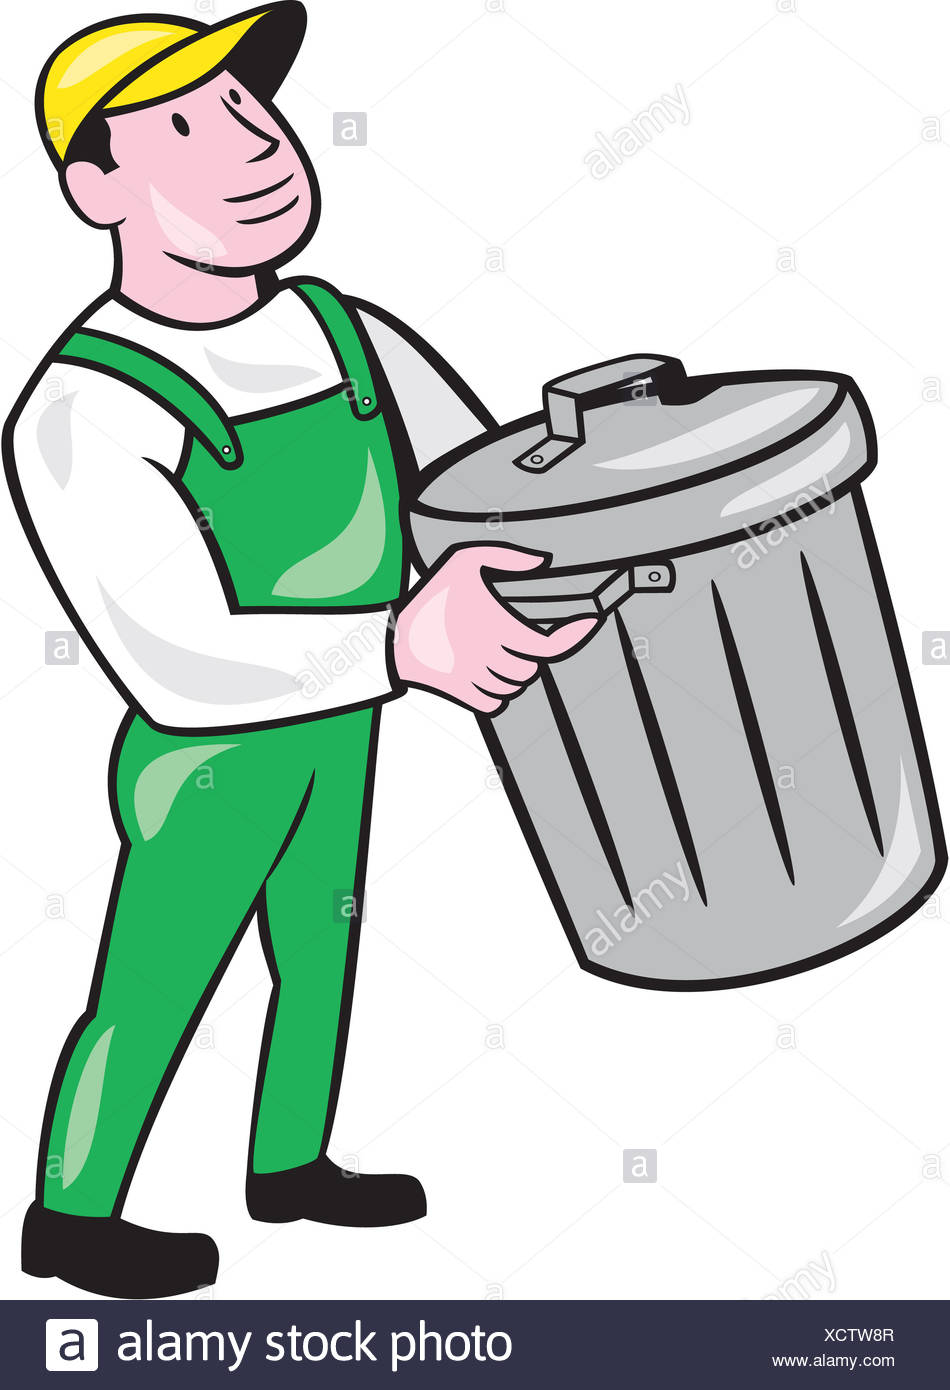 Trashman clipart image black and white download Garbage Man Clipart (106+ images in Collection) Page 2 image black and white download